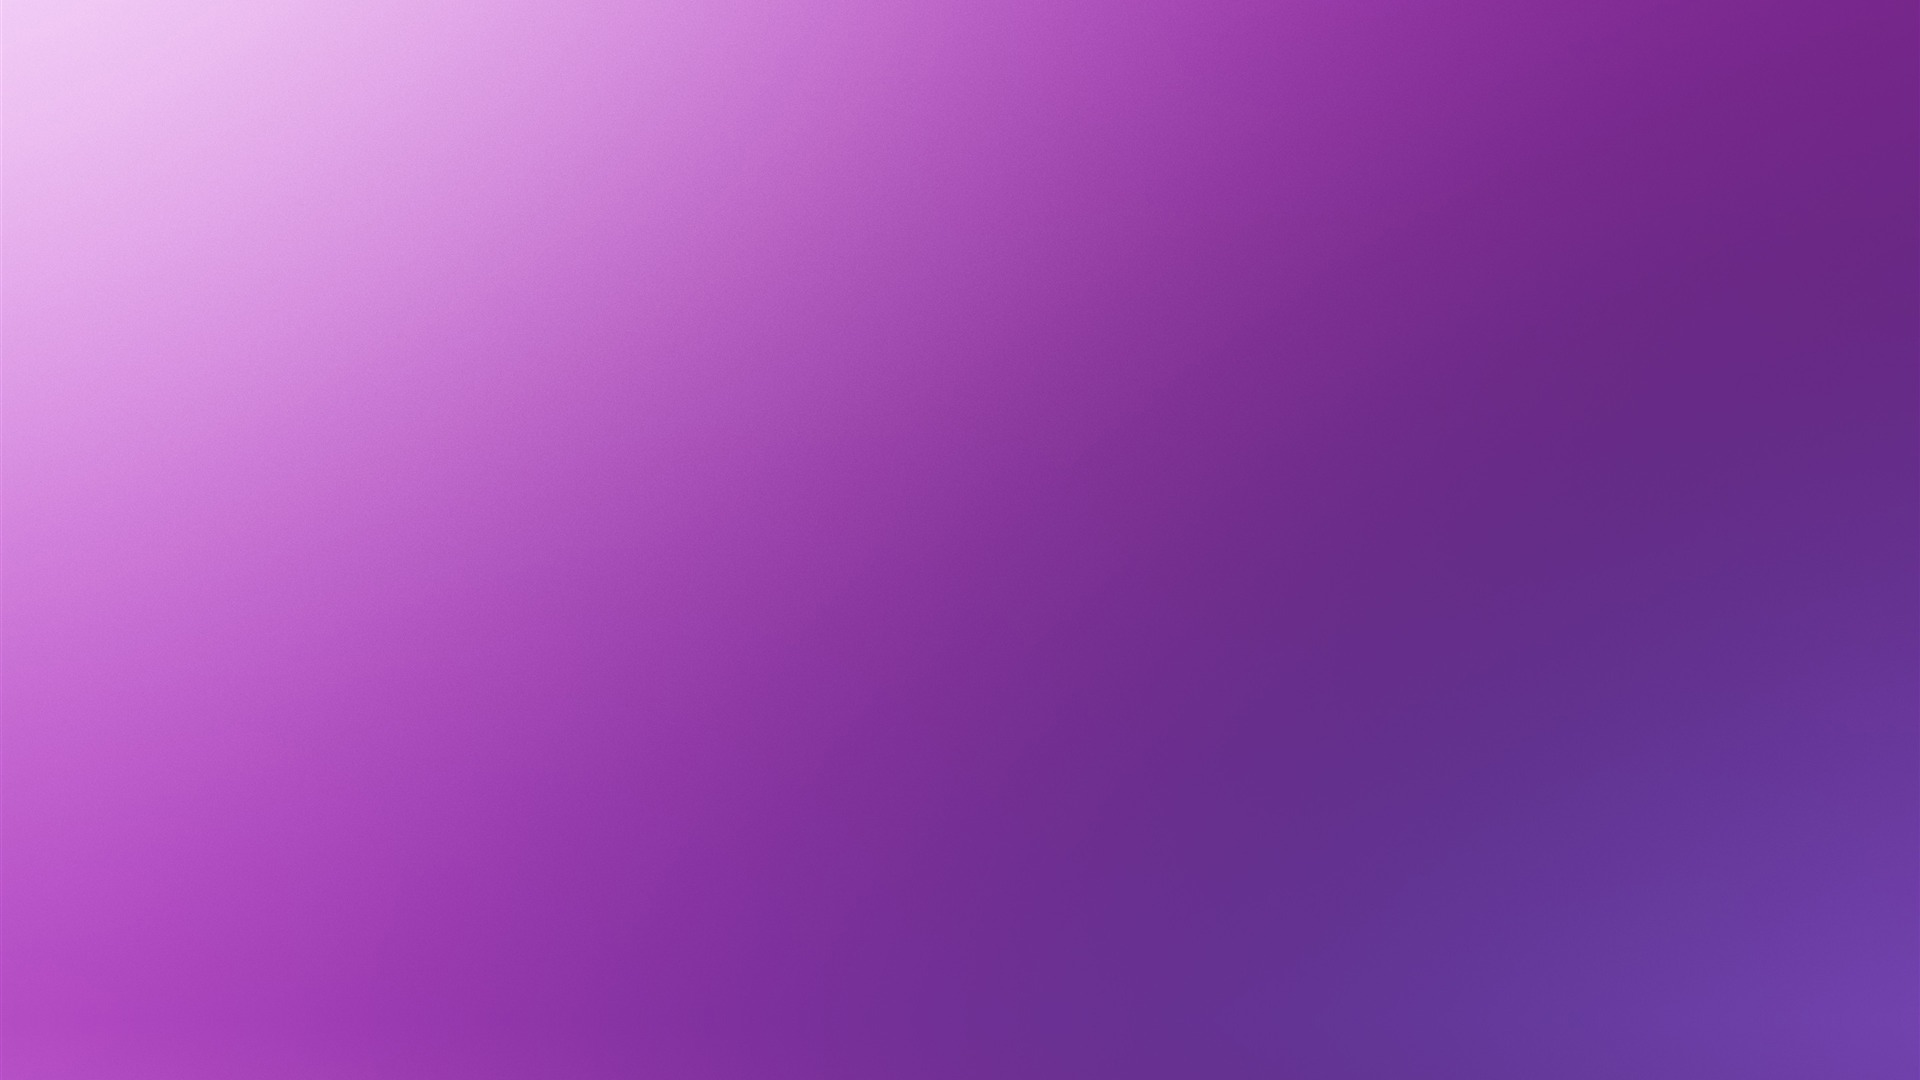 Purple gradient abstract vector image - 1920x1080 wallpaper download